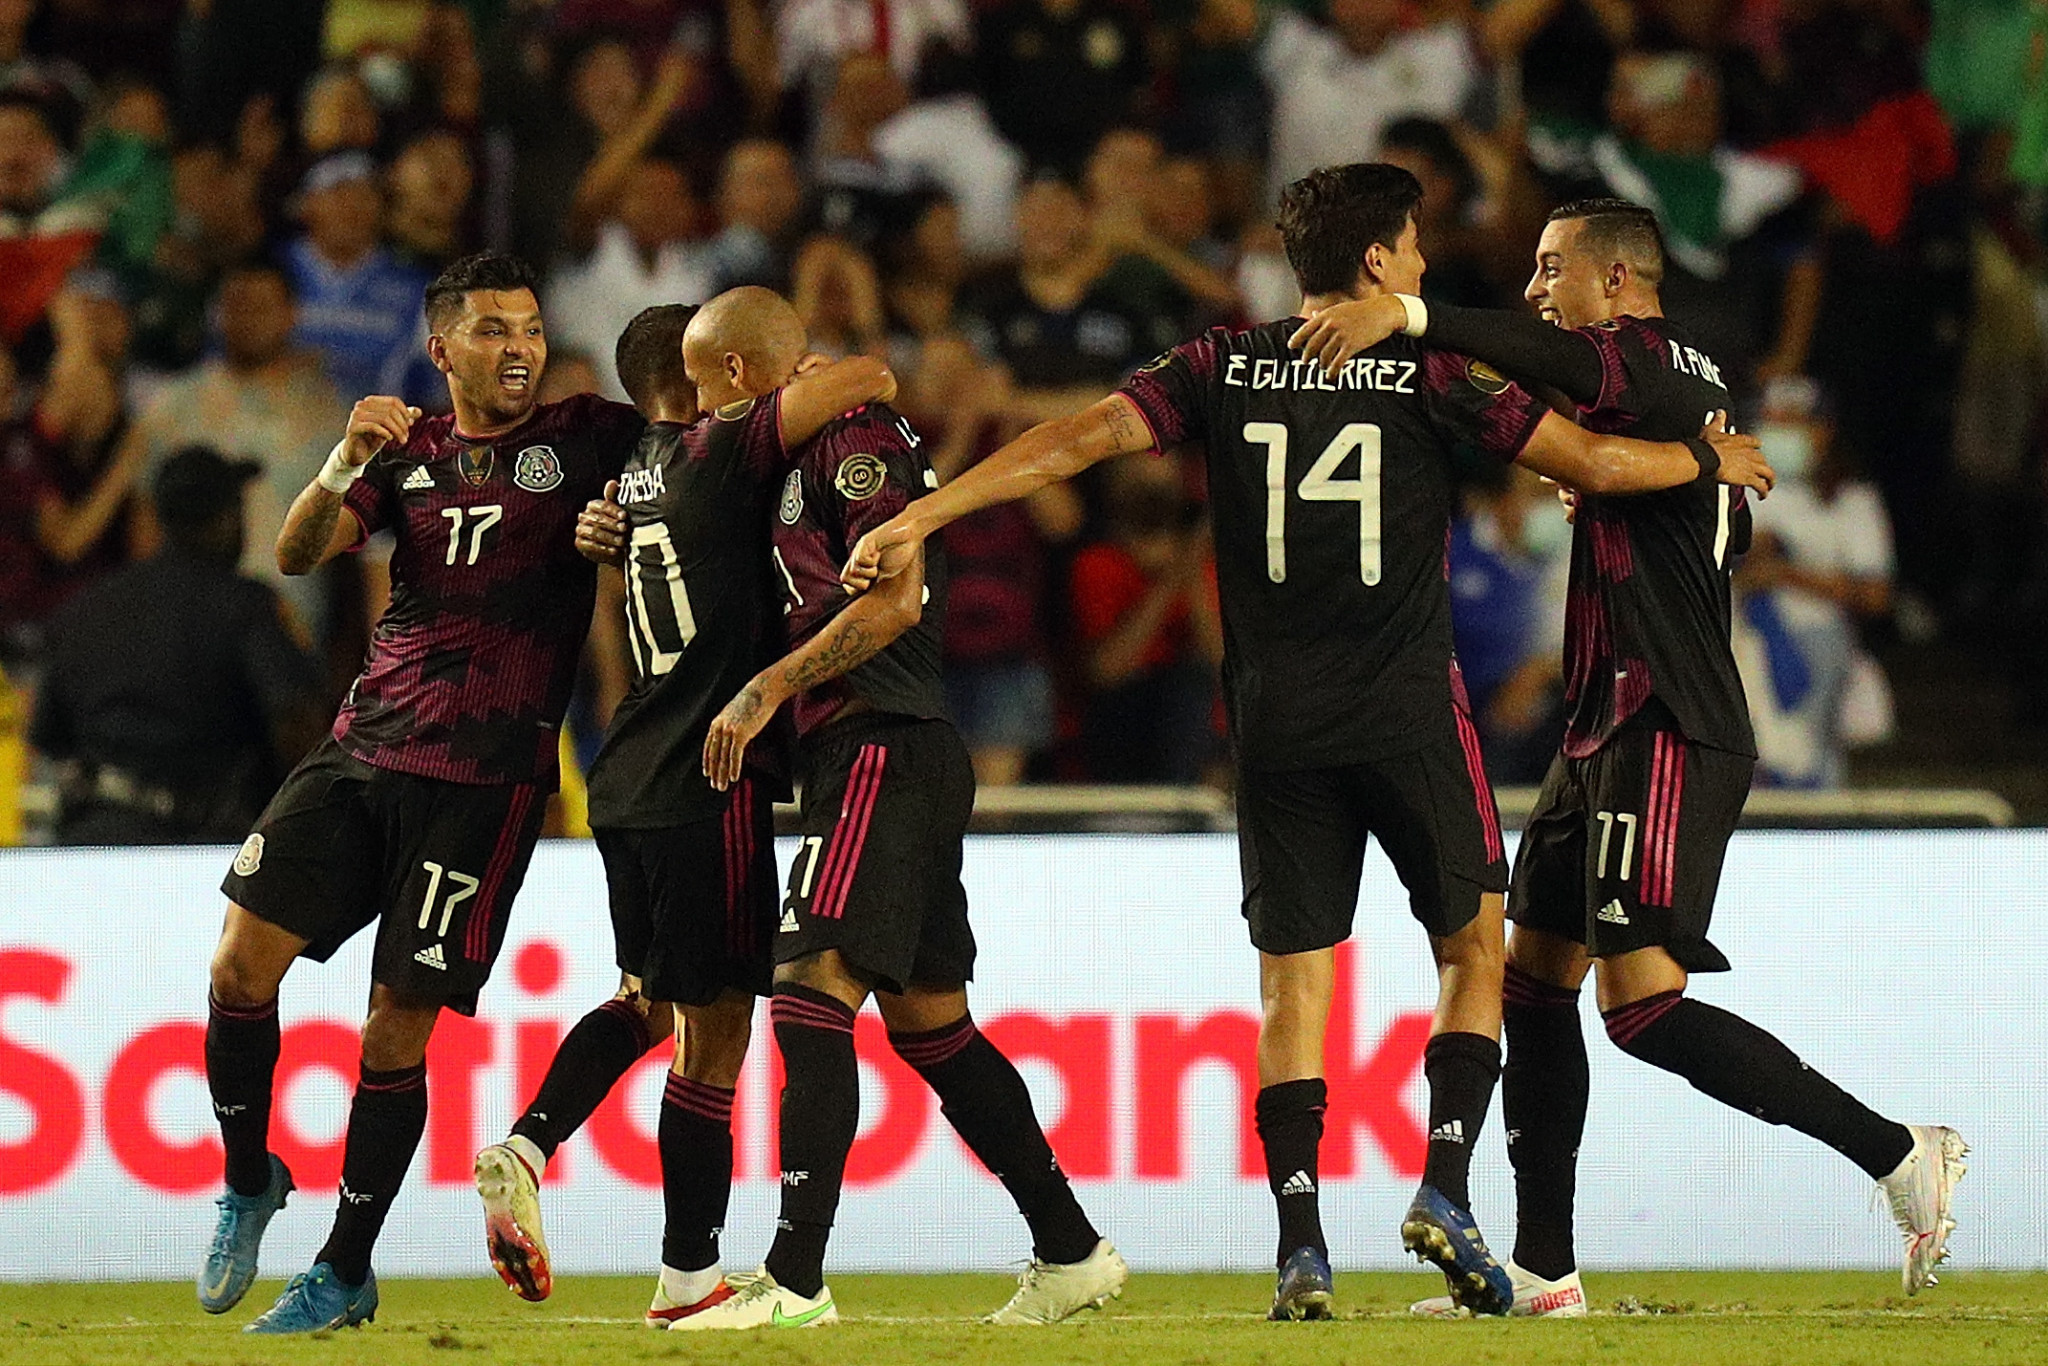 Mexico advance to Gold Cup quarter-finals